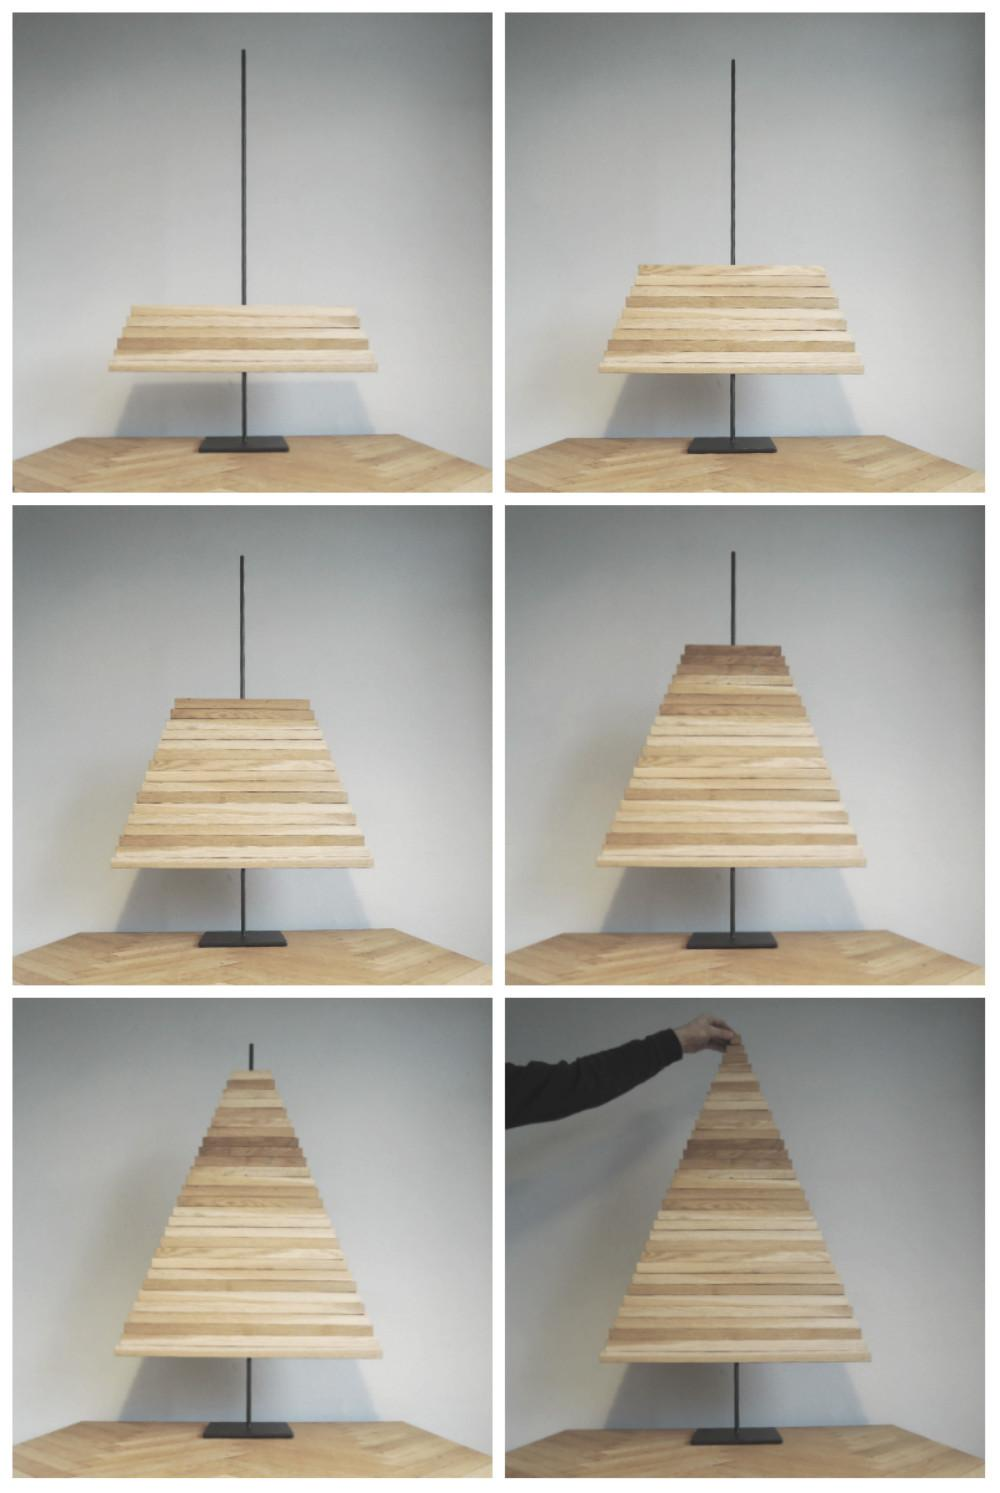 Diy Project Modern Wooden Christmas Tree Design Sponge